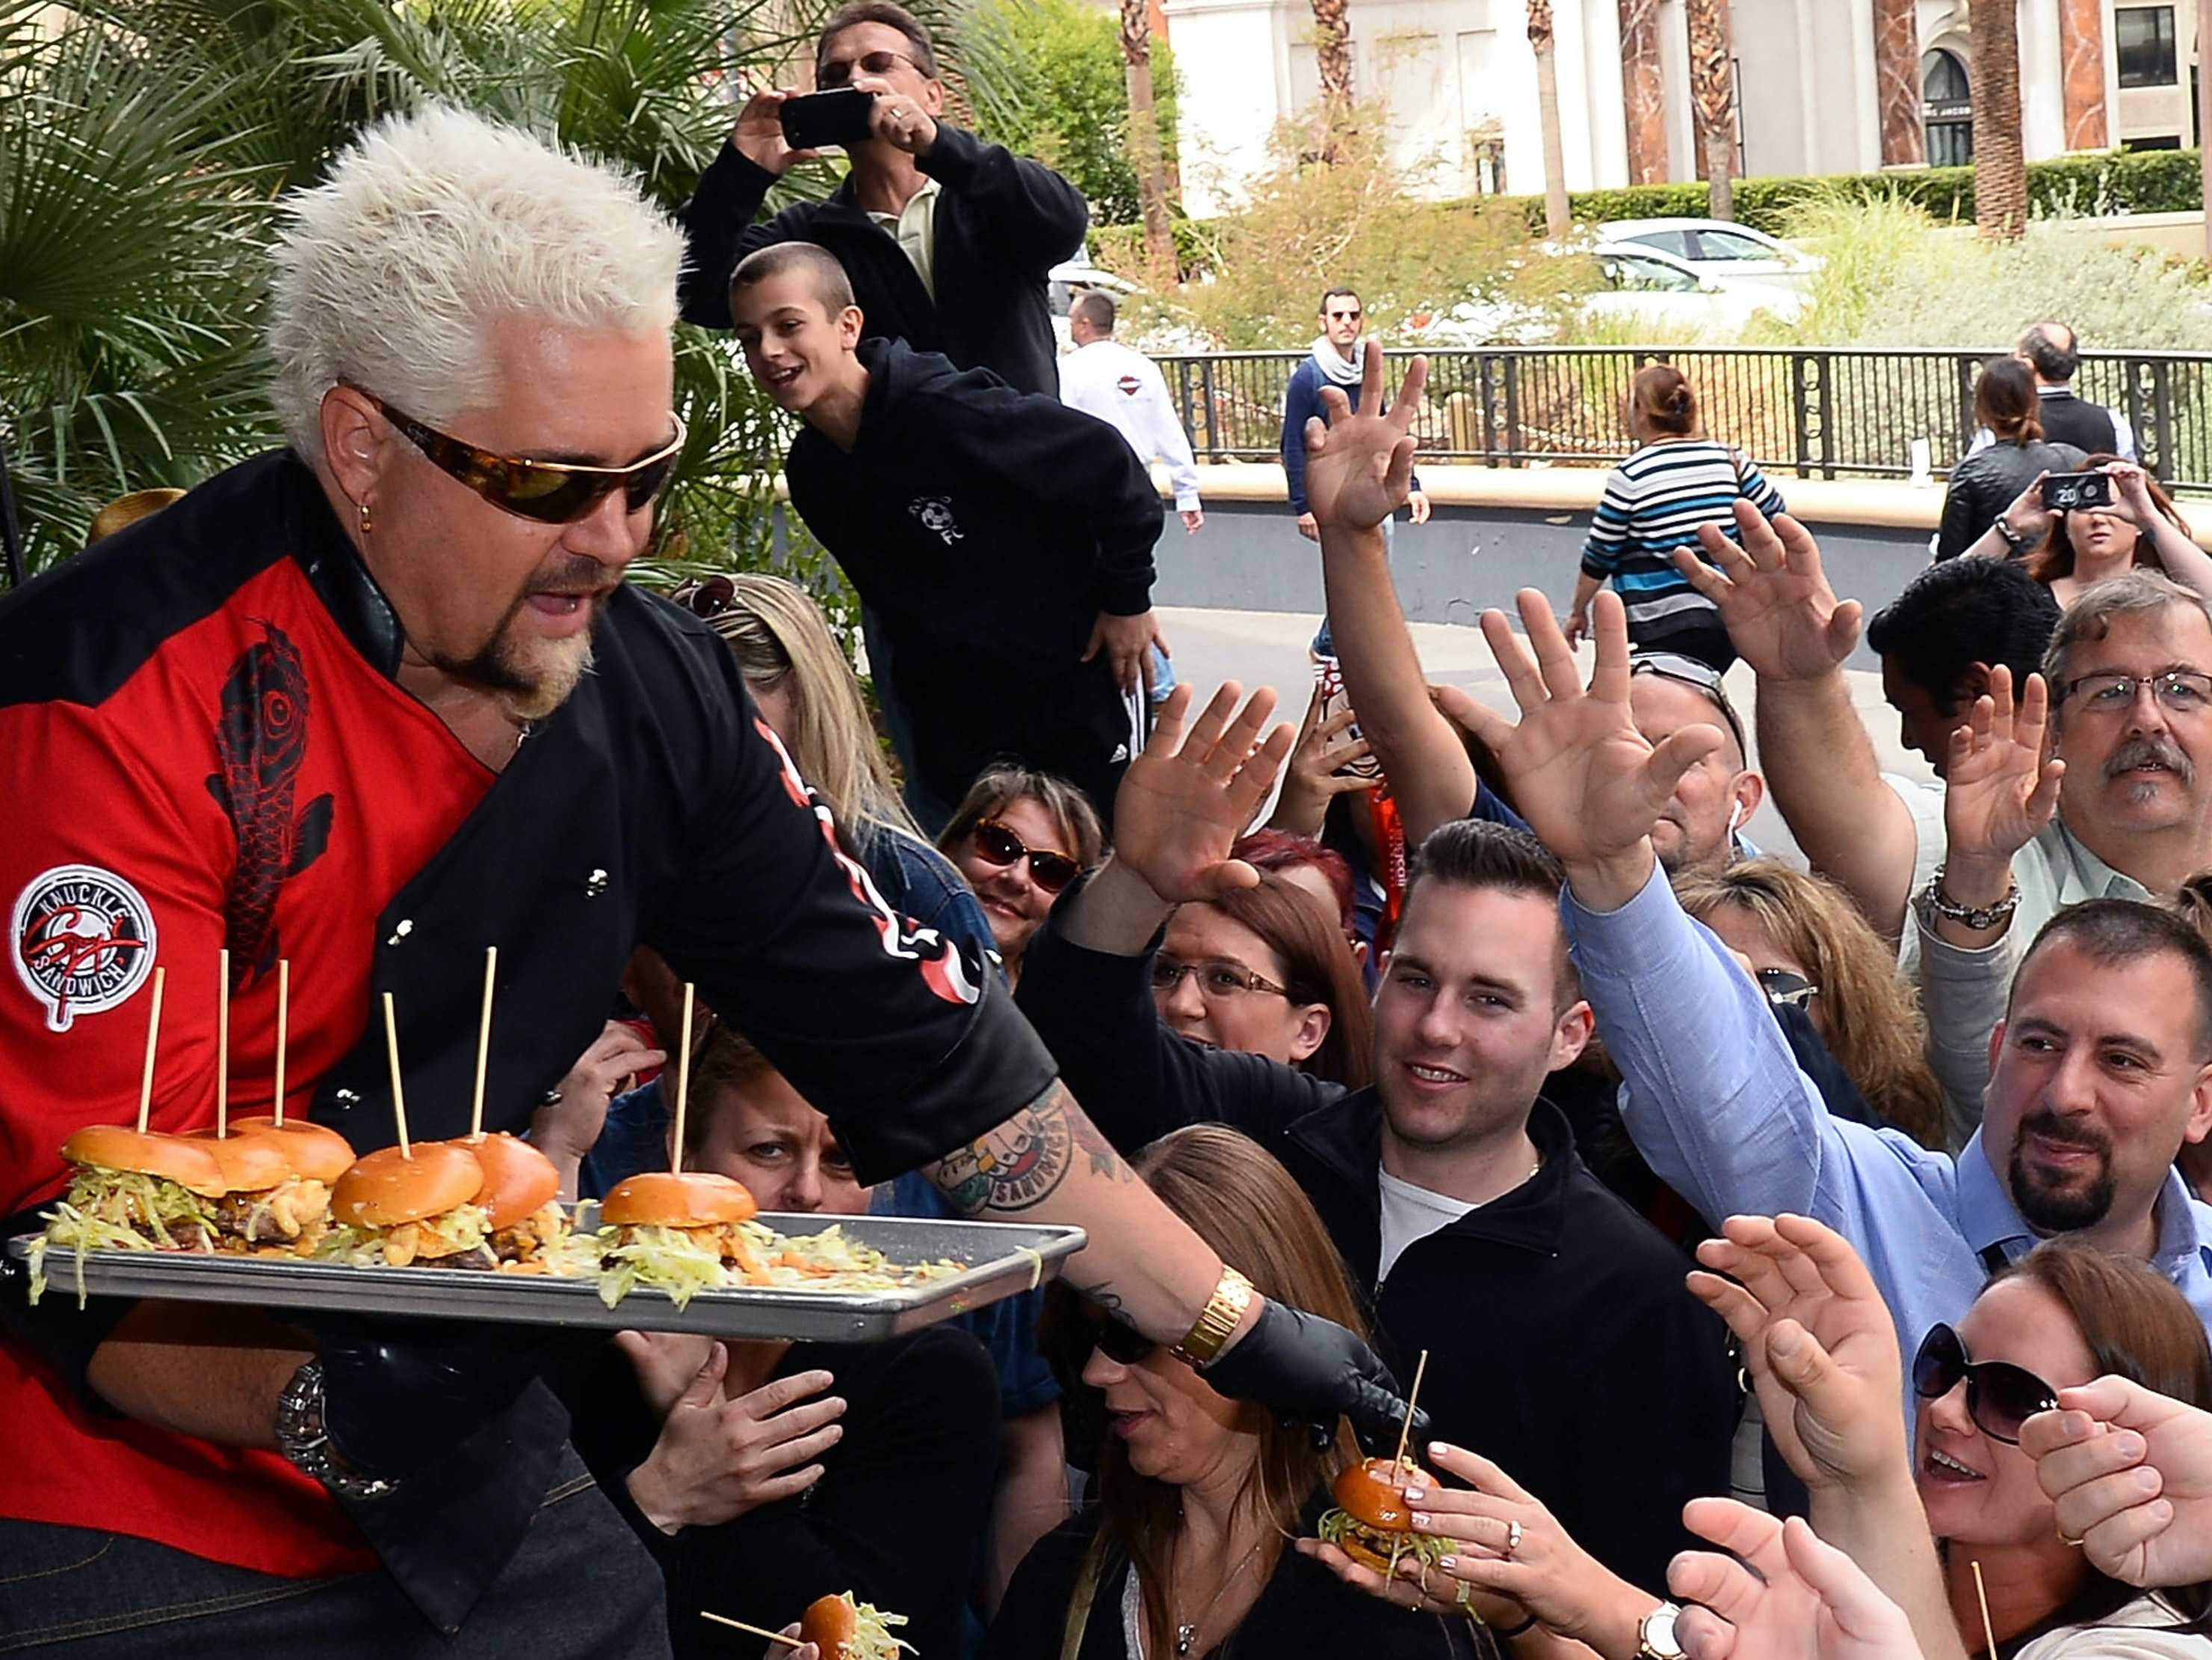 Chef and television personality Guy Fieri serves hamburgers to guests during a welcome event for Guy Fieri's Vegas Kitchen & Bar at The Quad Resort & Casino